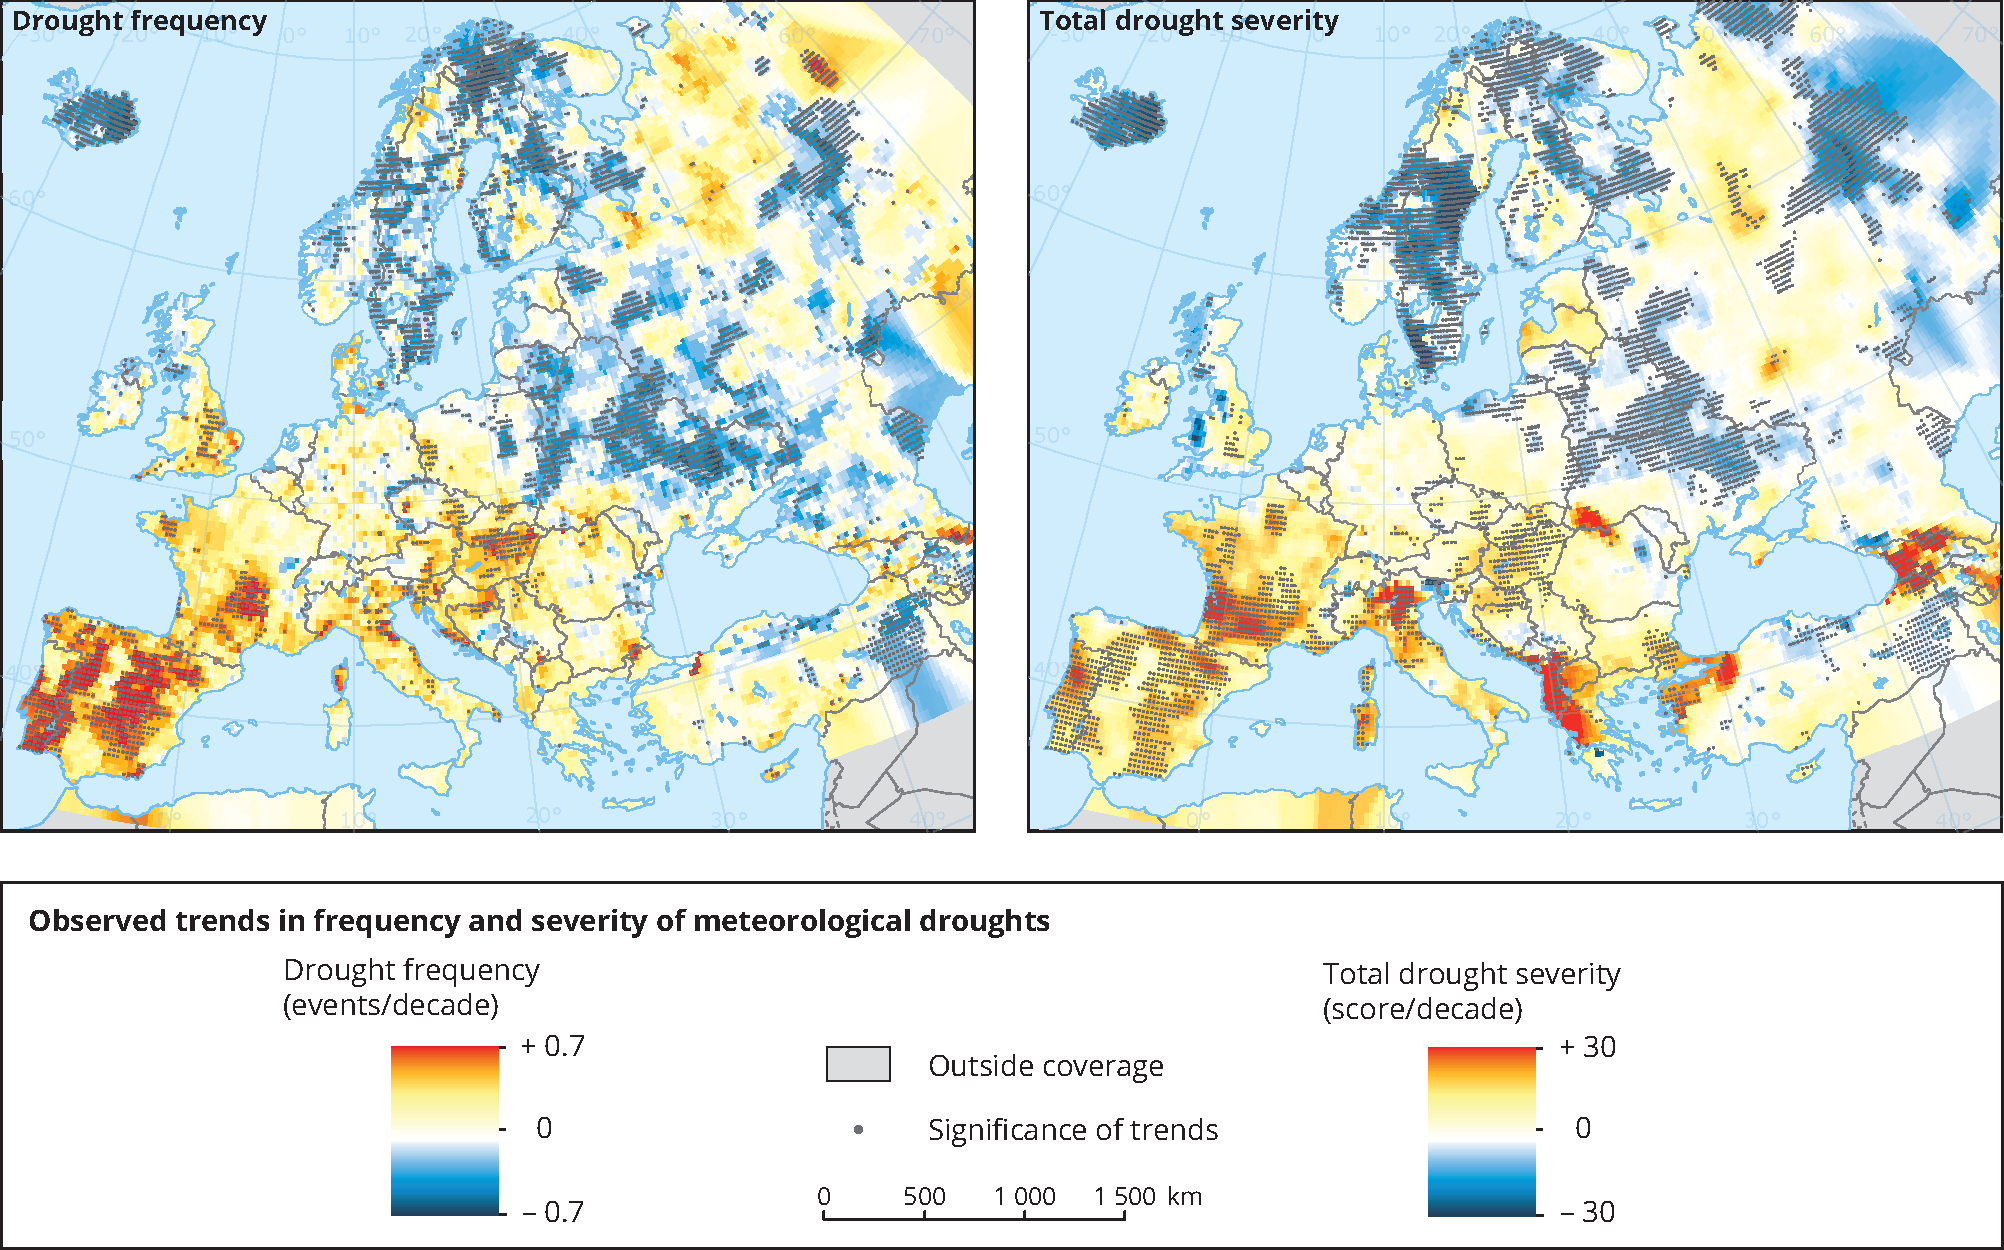 Observed trends in frequency and severity of meteorological droughts